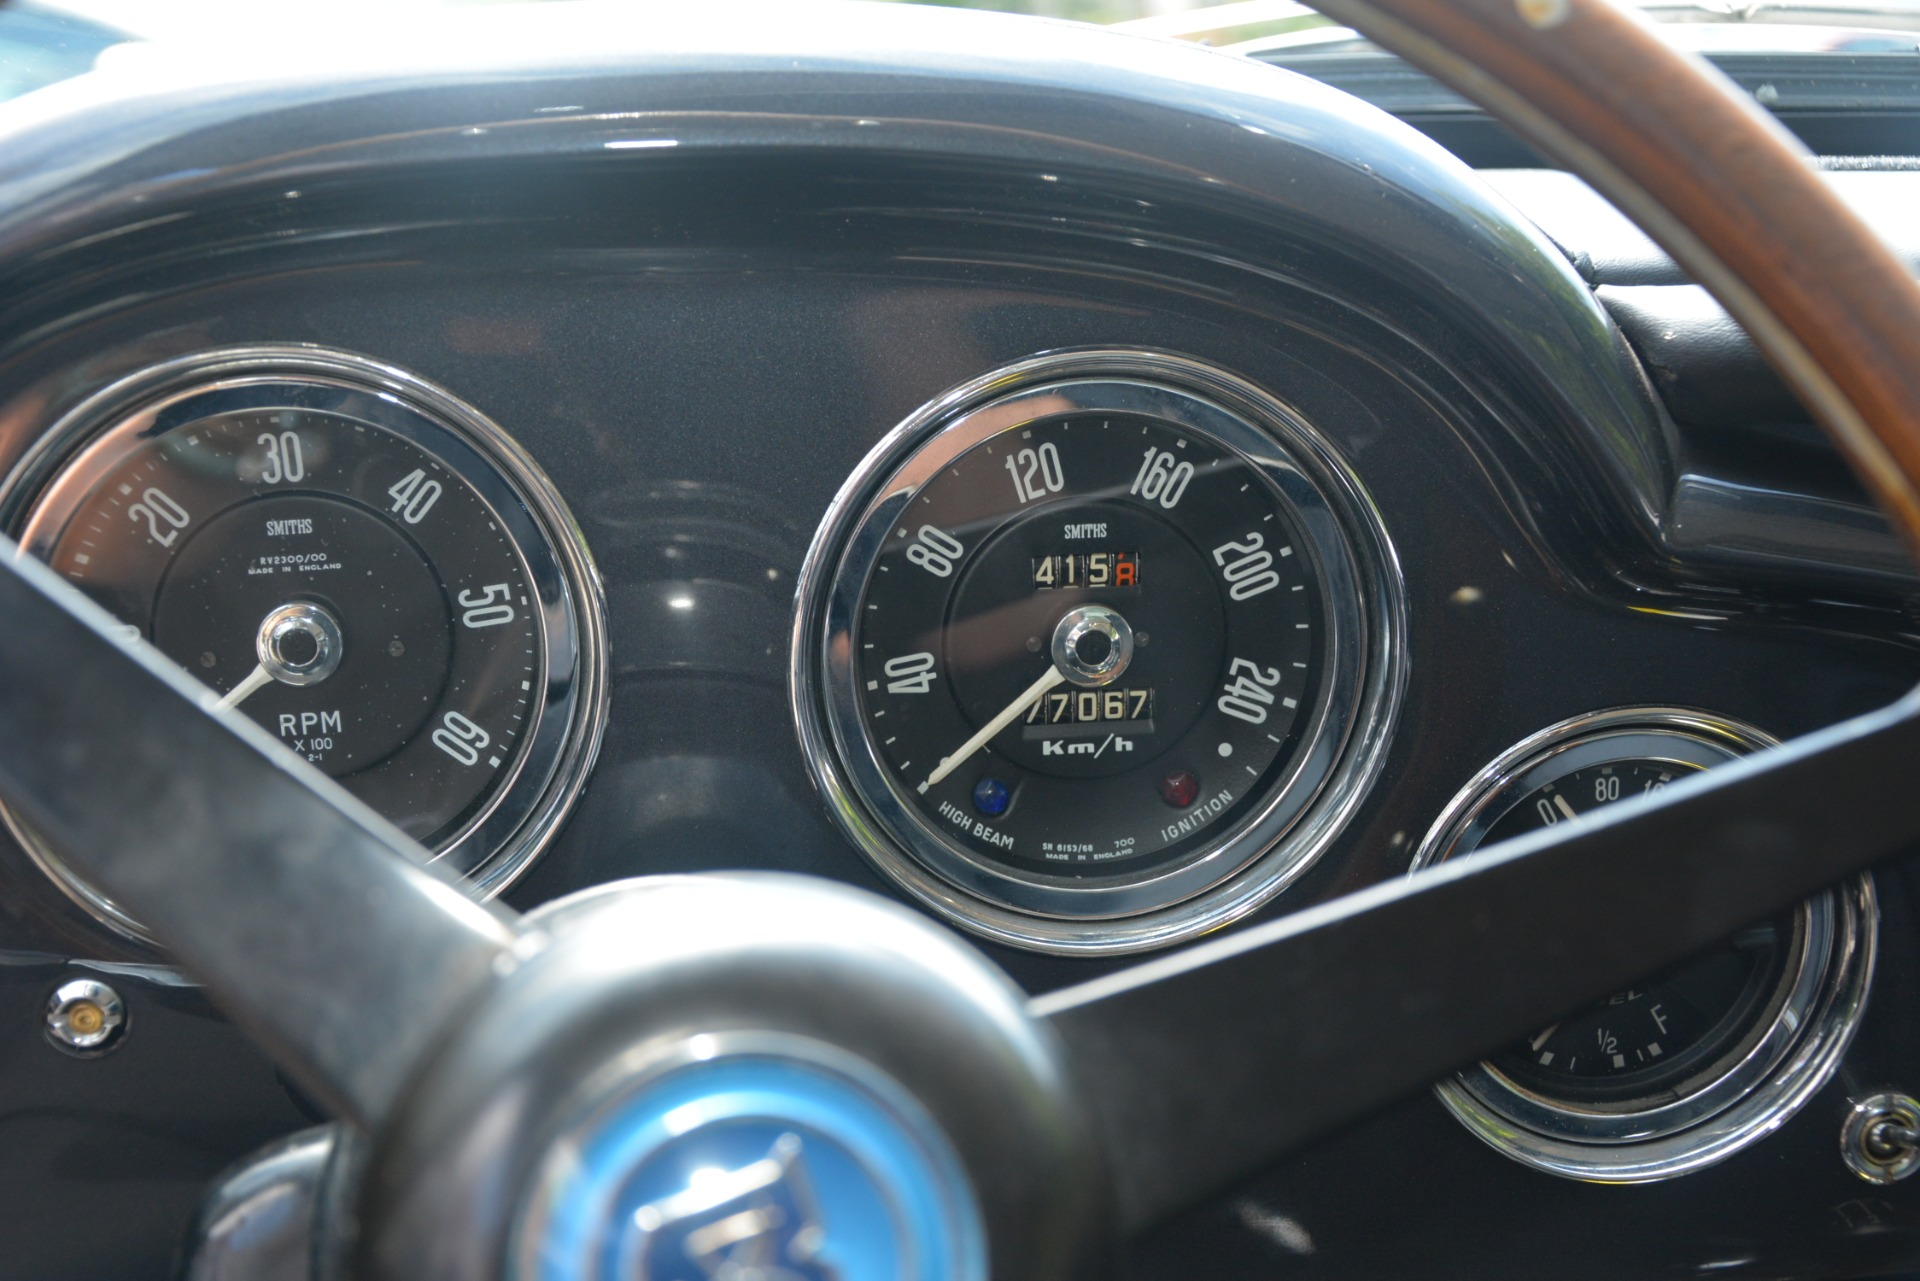 Used 1961 Aston Martin DB4 Series IV Coupe For Sale In Westport, CT 3186_p29